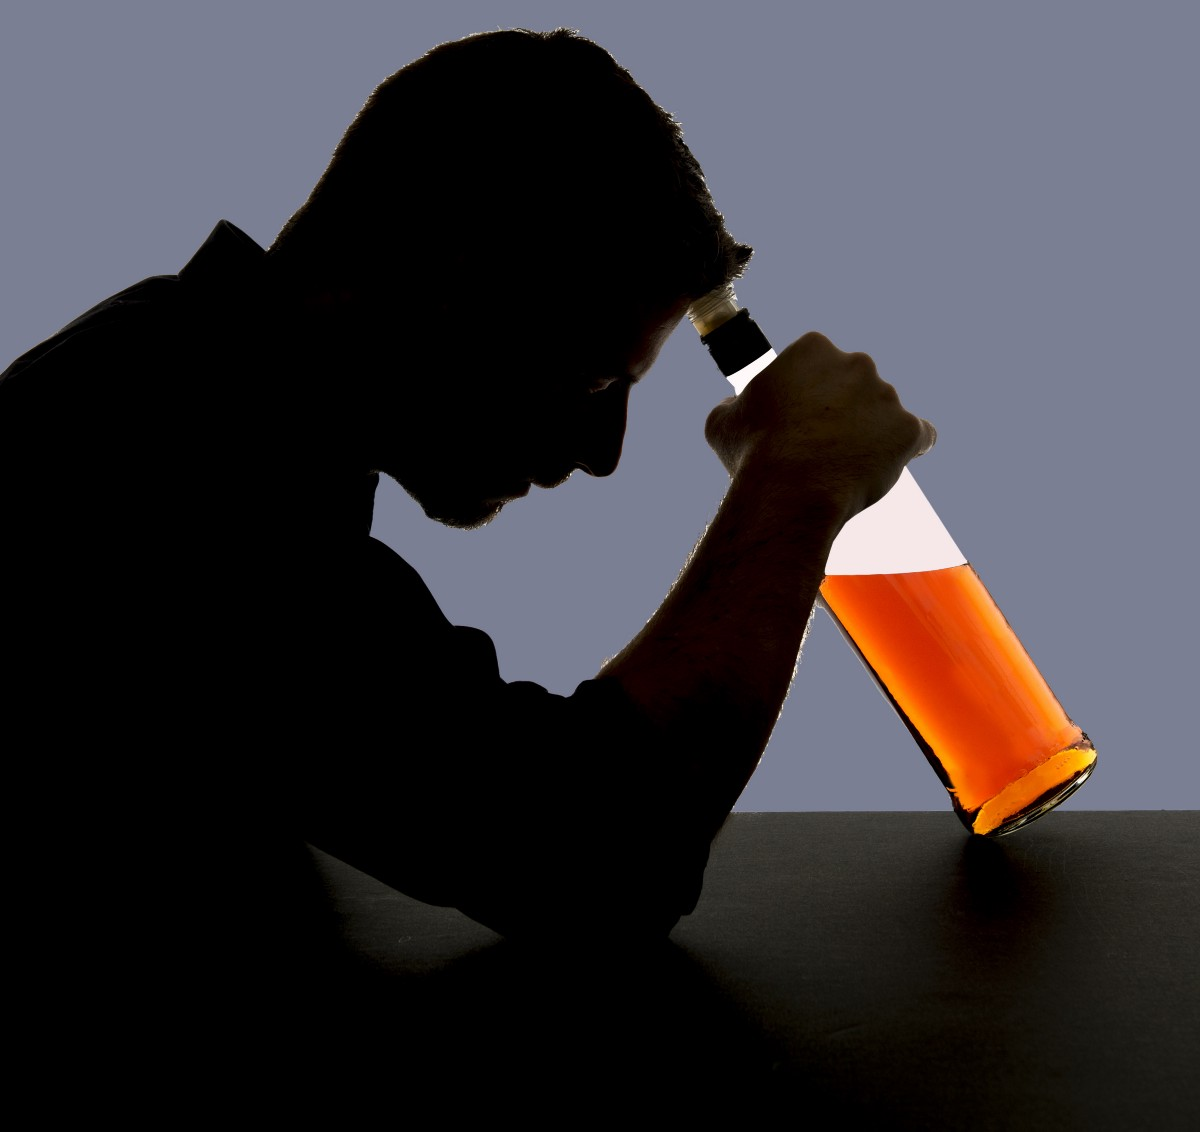 alcohol addiction Alcohol abuse is the second most common form of substance abuse in the united states, after tobacco addiction some people are more severely affected than others when an individual's drinking causes distress or harm, that's called an alcohol use disorder.